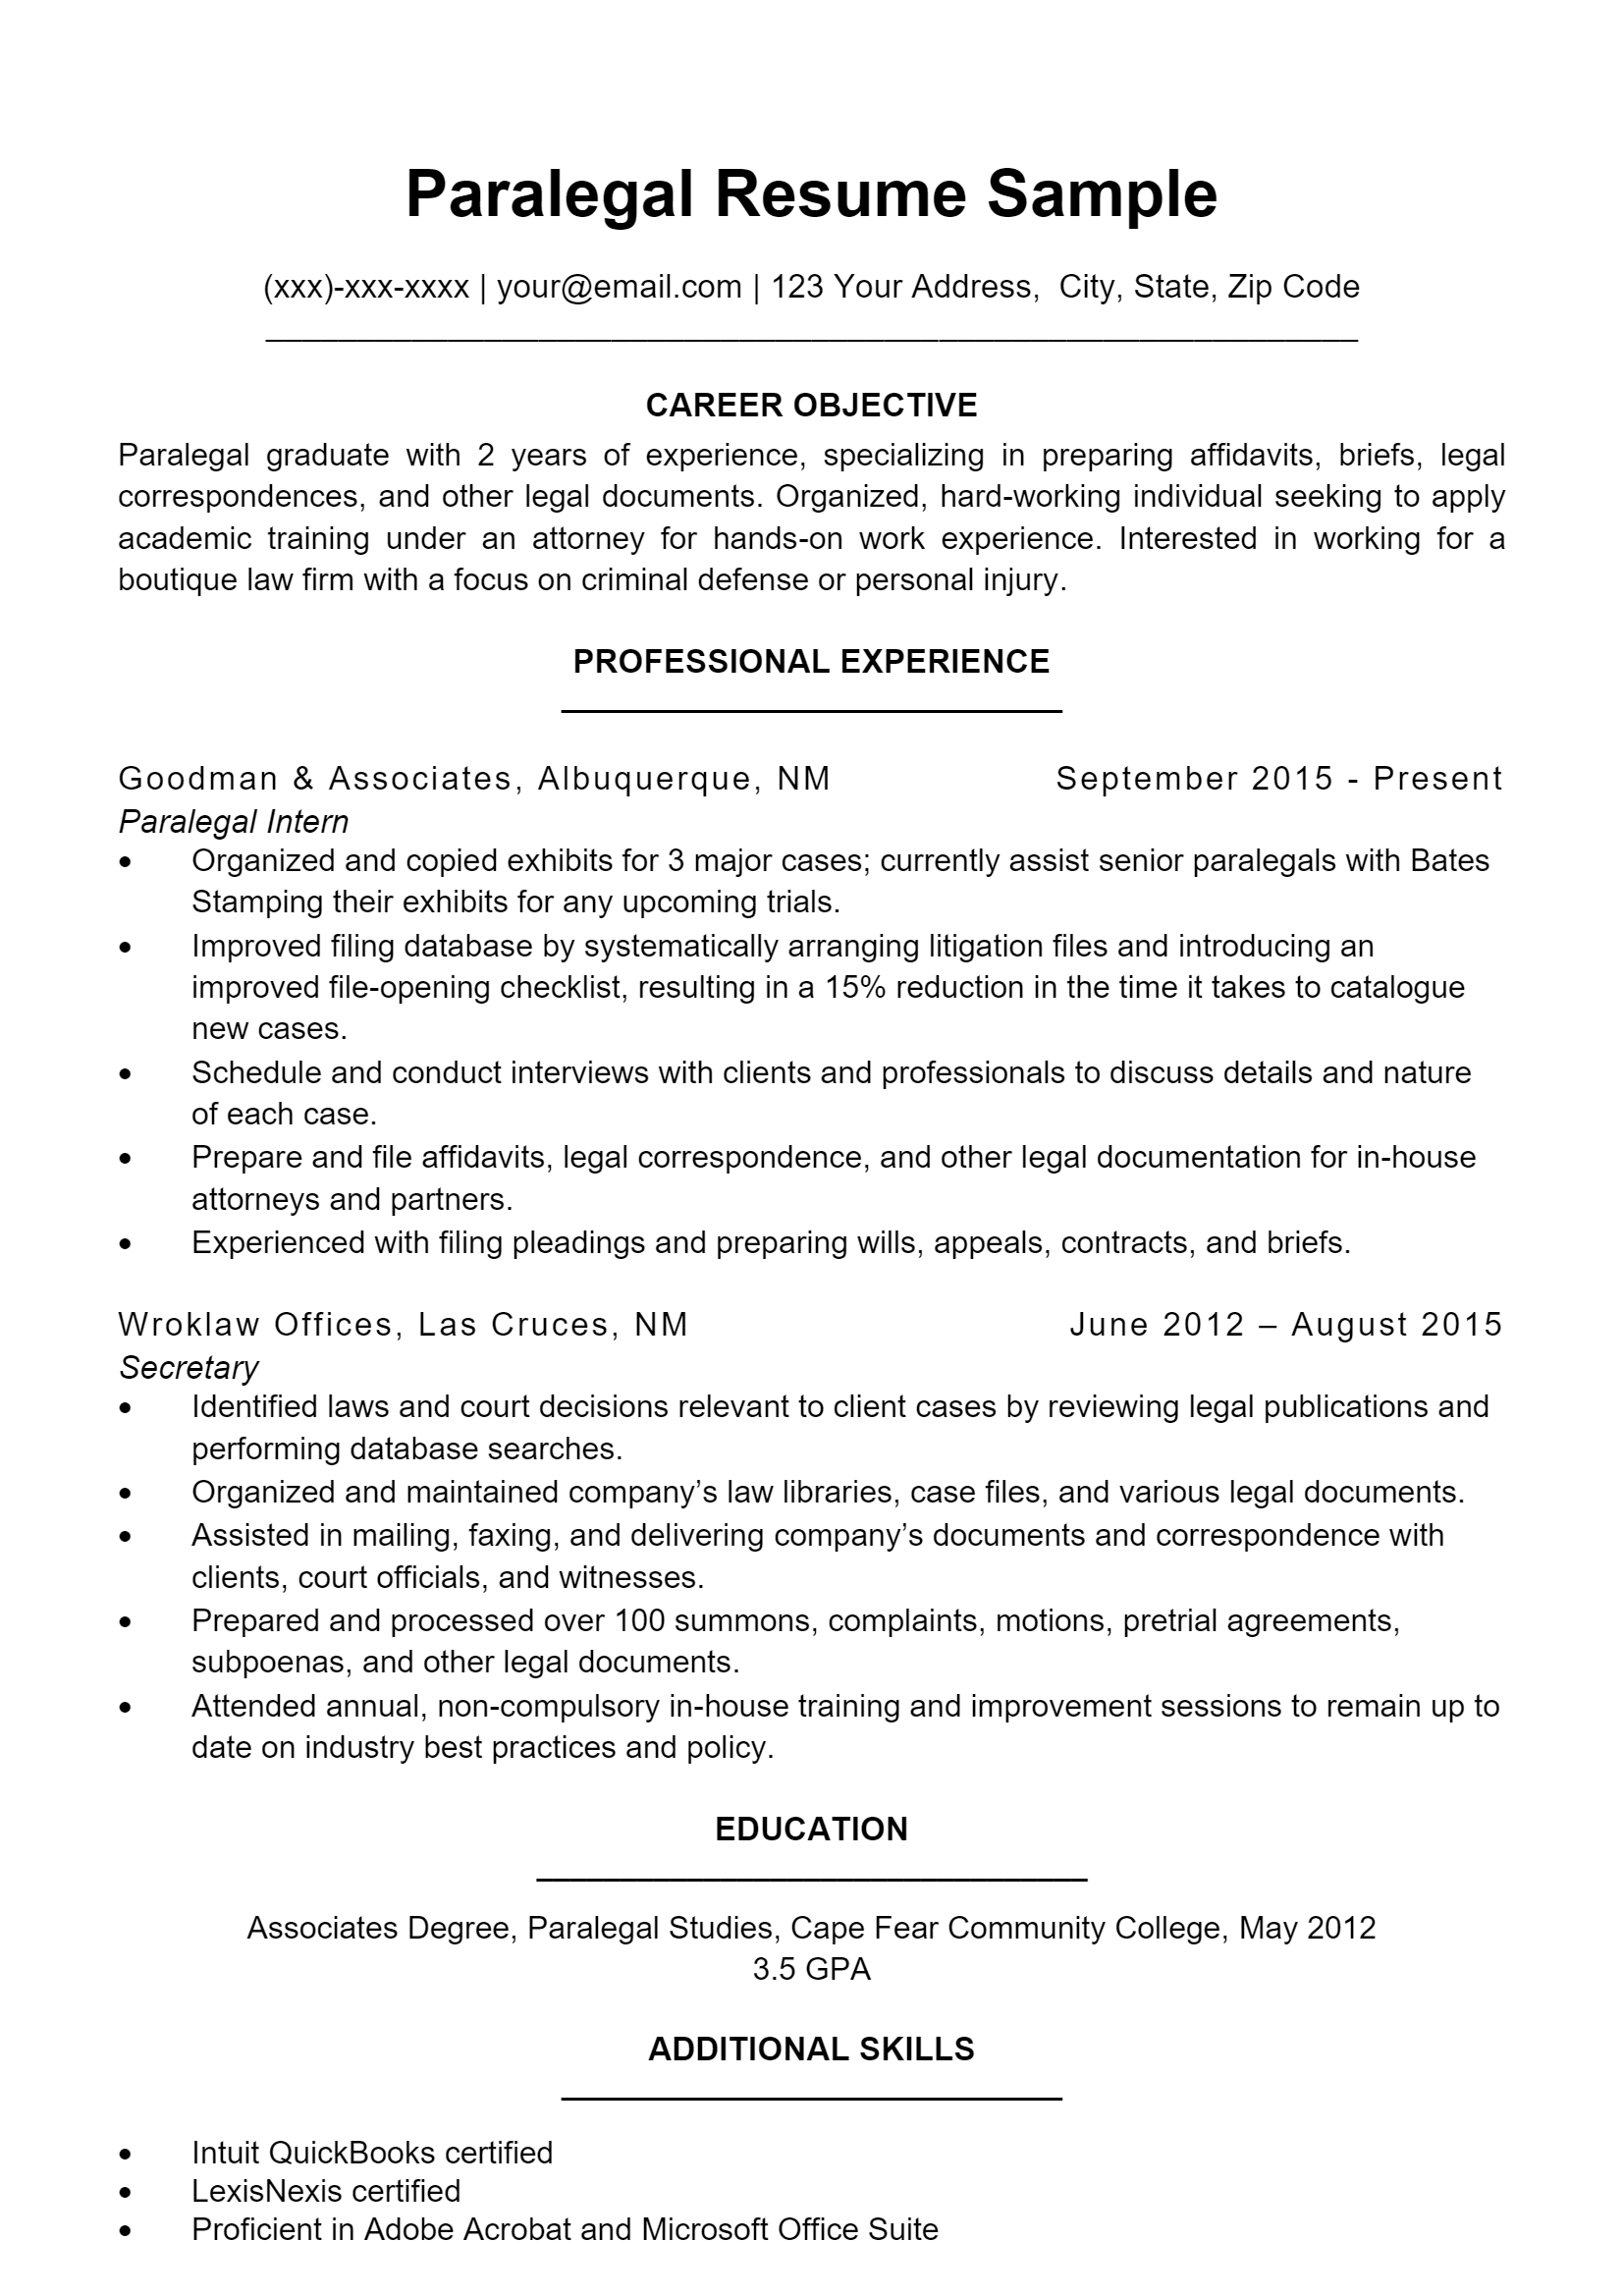 Paralegal Resume .Docx (Word)